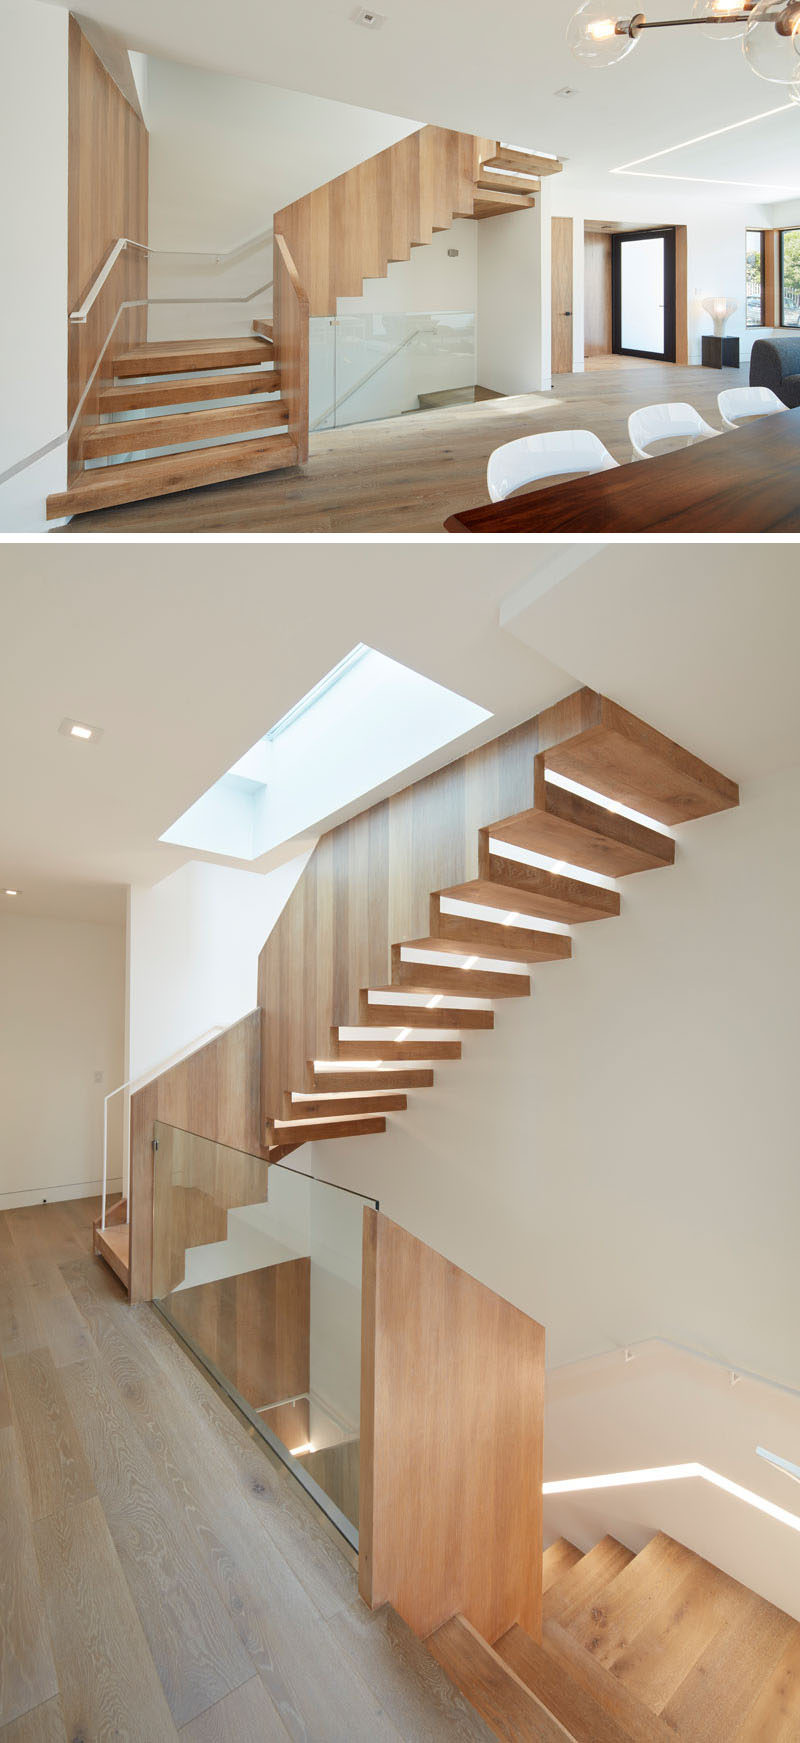 These modern wood stairs are positioned underneath a skylight so that the light filters down the stairwell, bringing in natural light to the space. At night, a built-in light runs the length of the stairs.